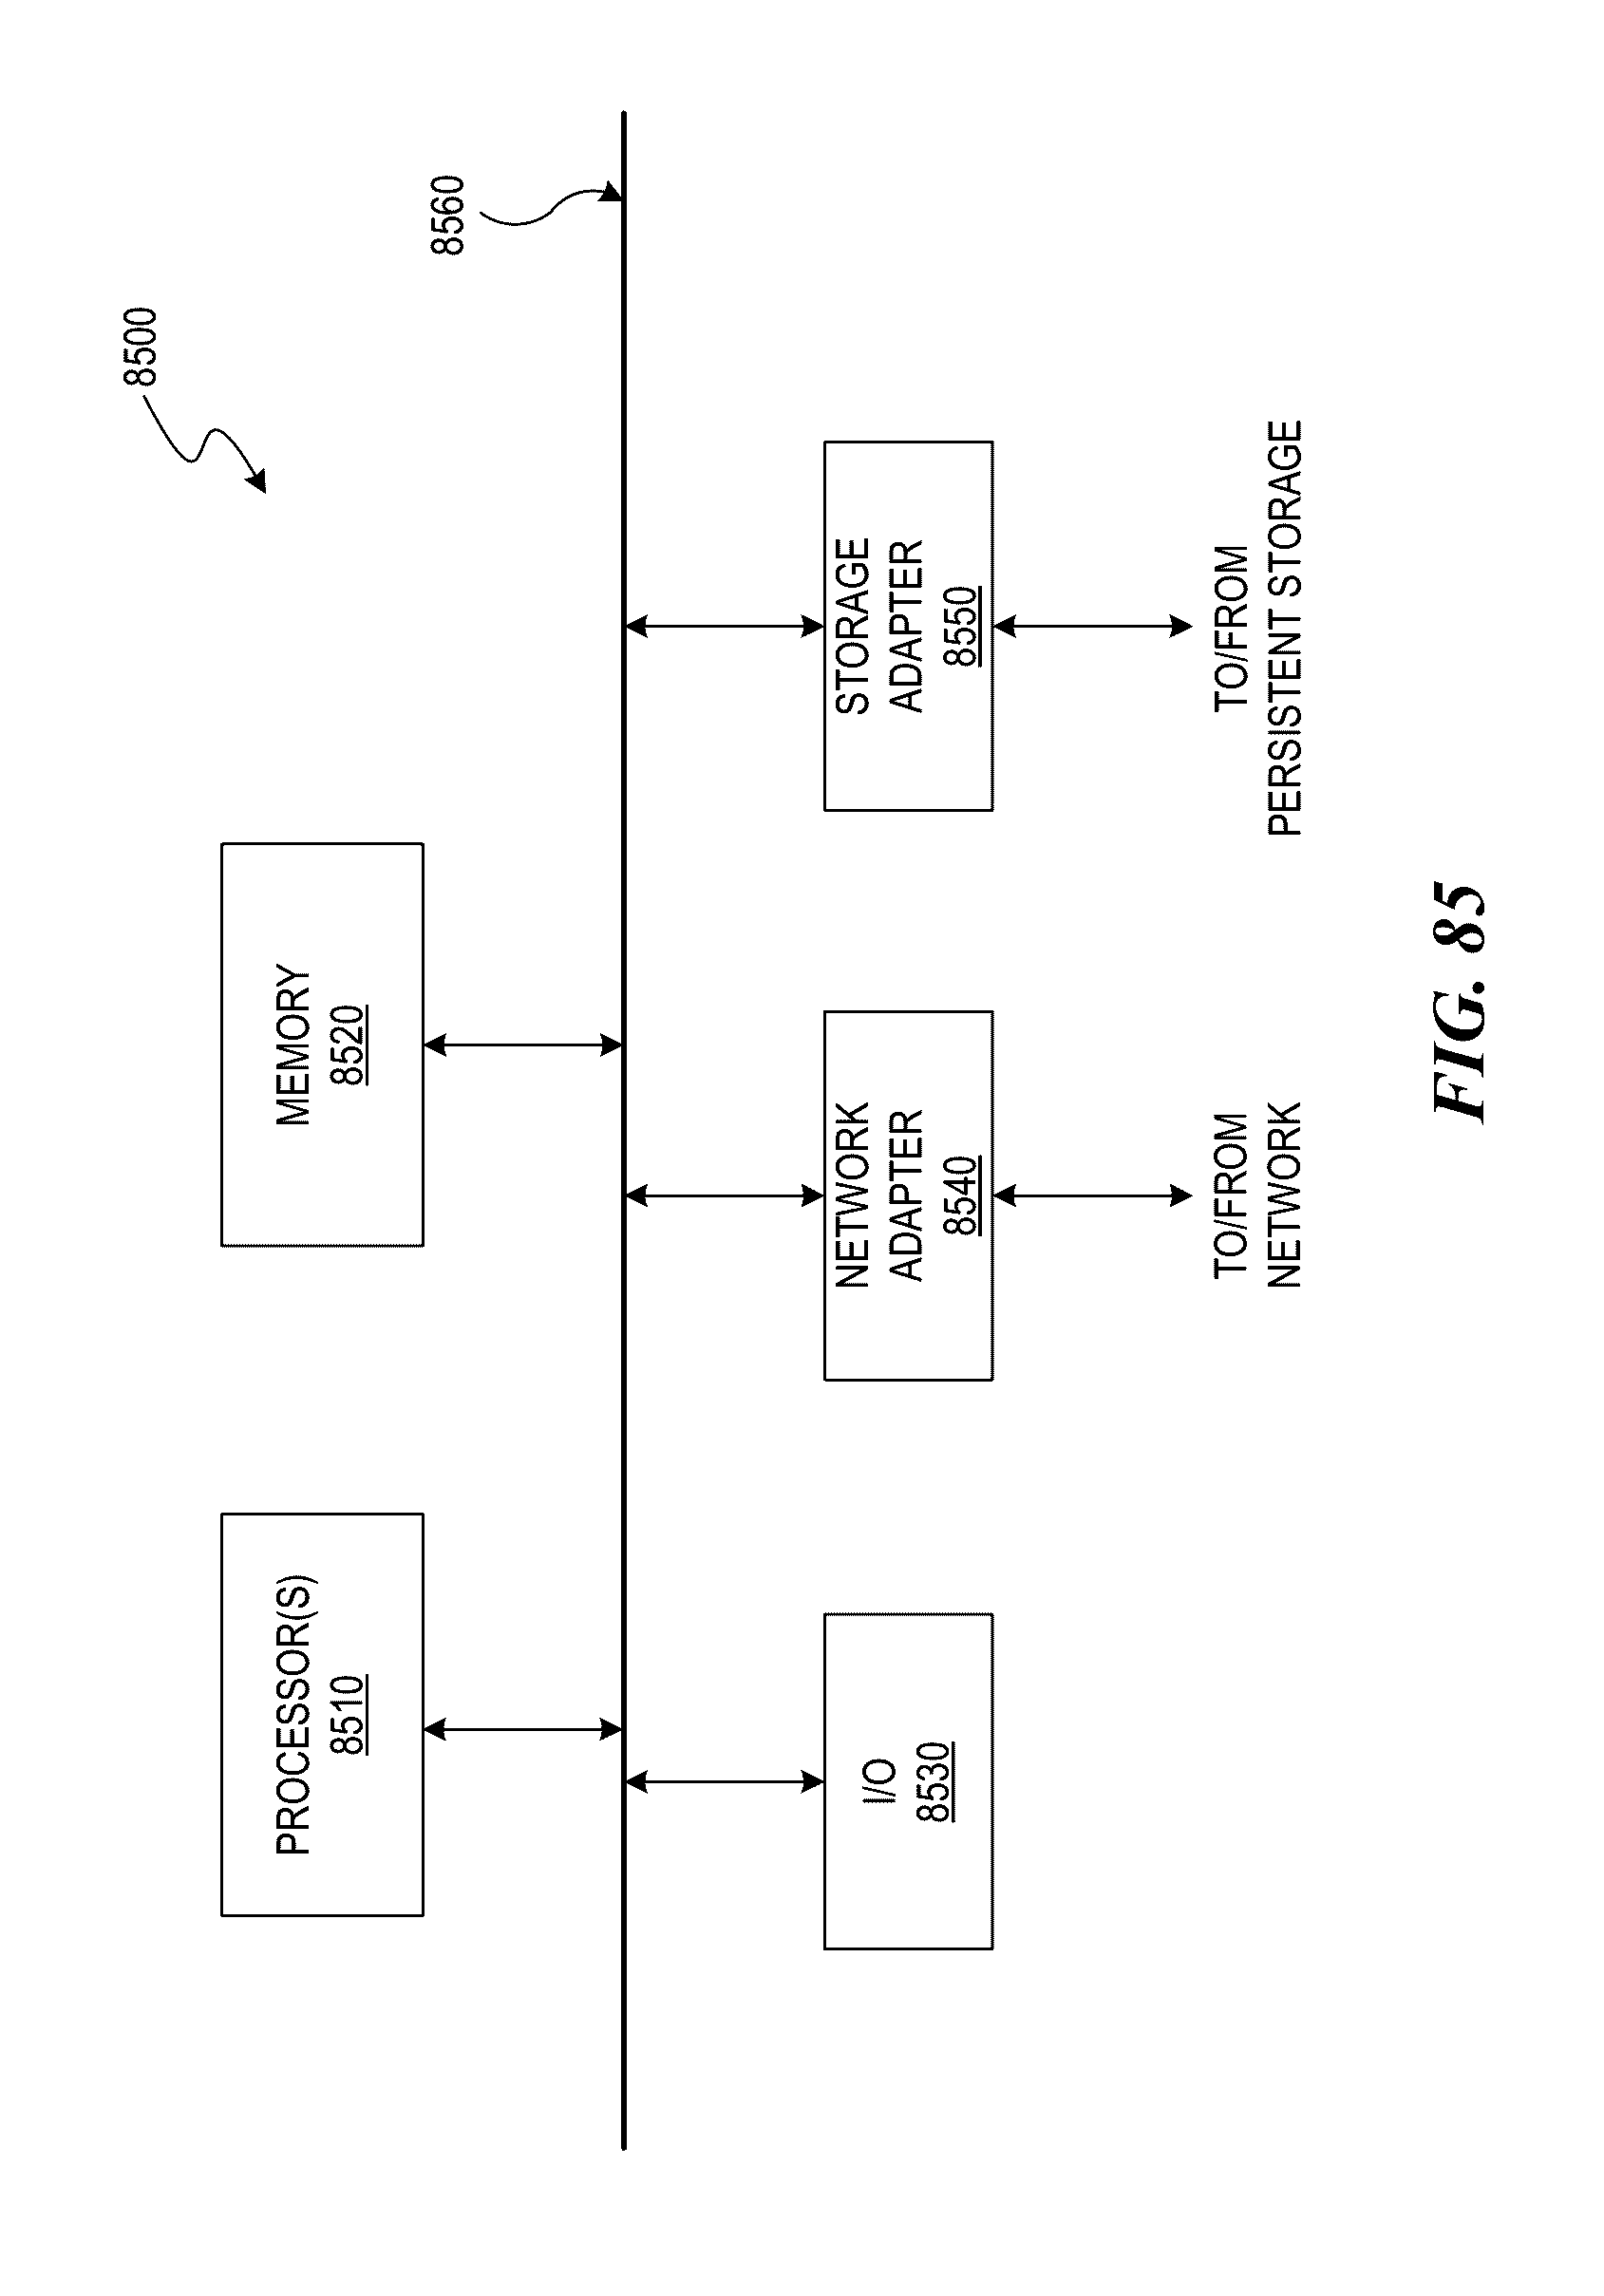 Patent Us 9667641 B2 Cloudpath Wireless Network Diagram Images